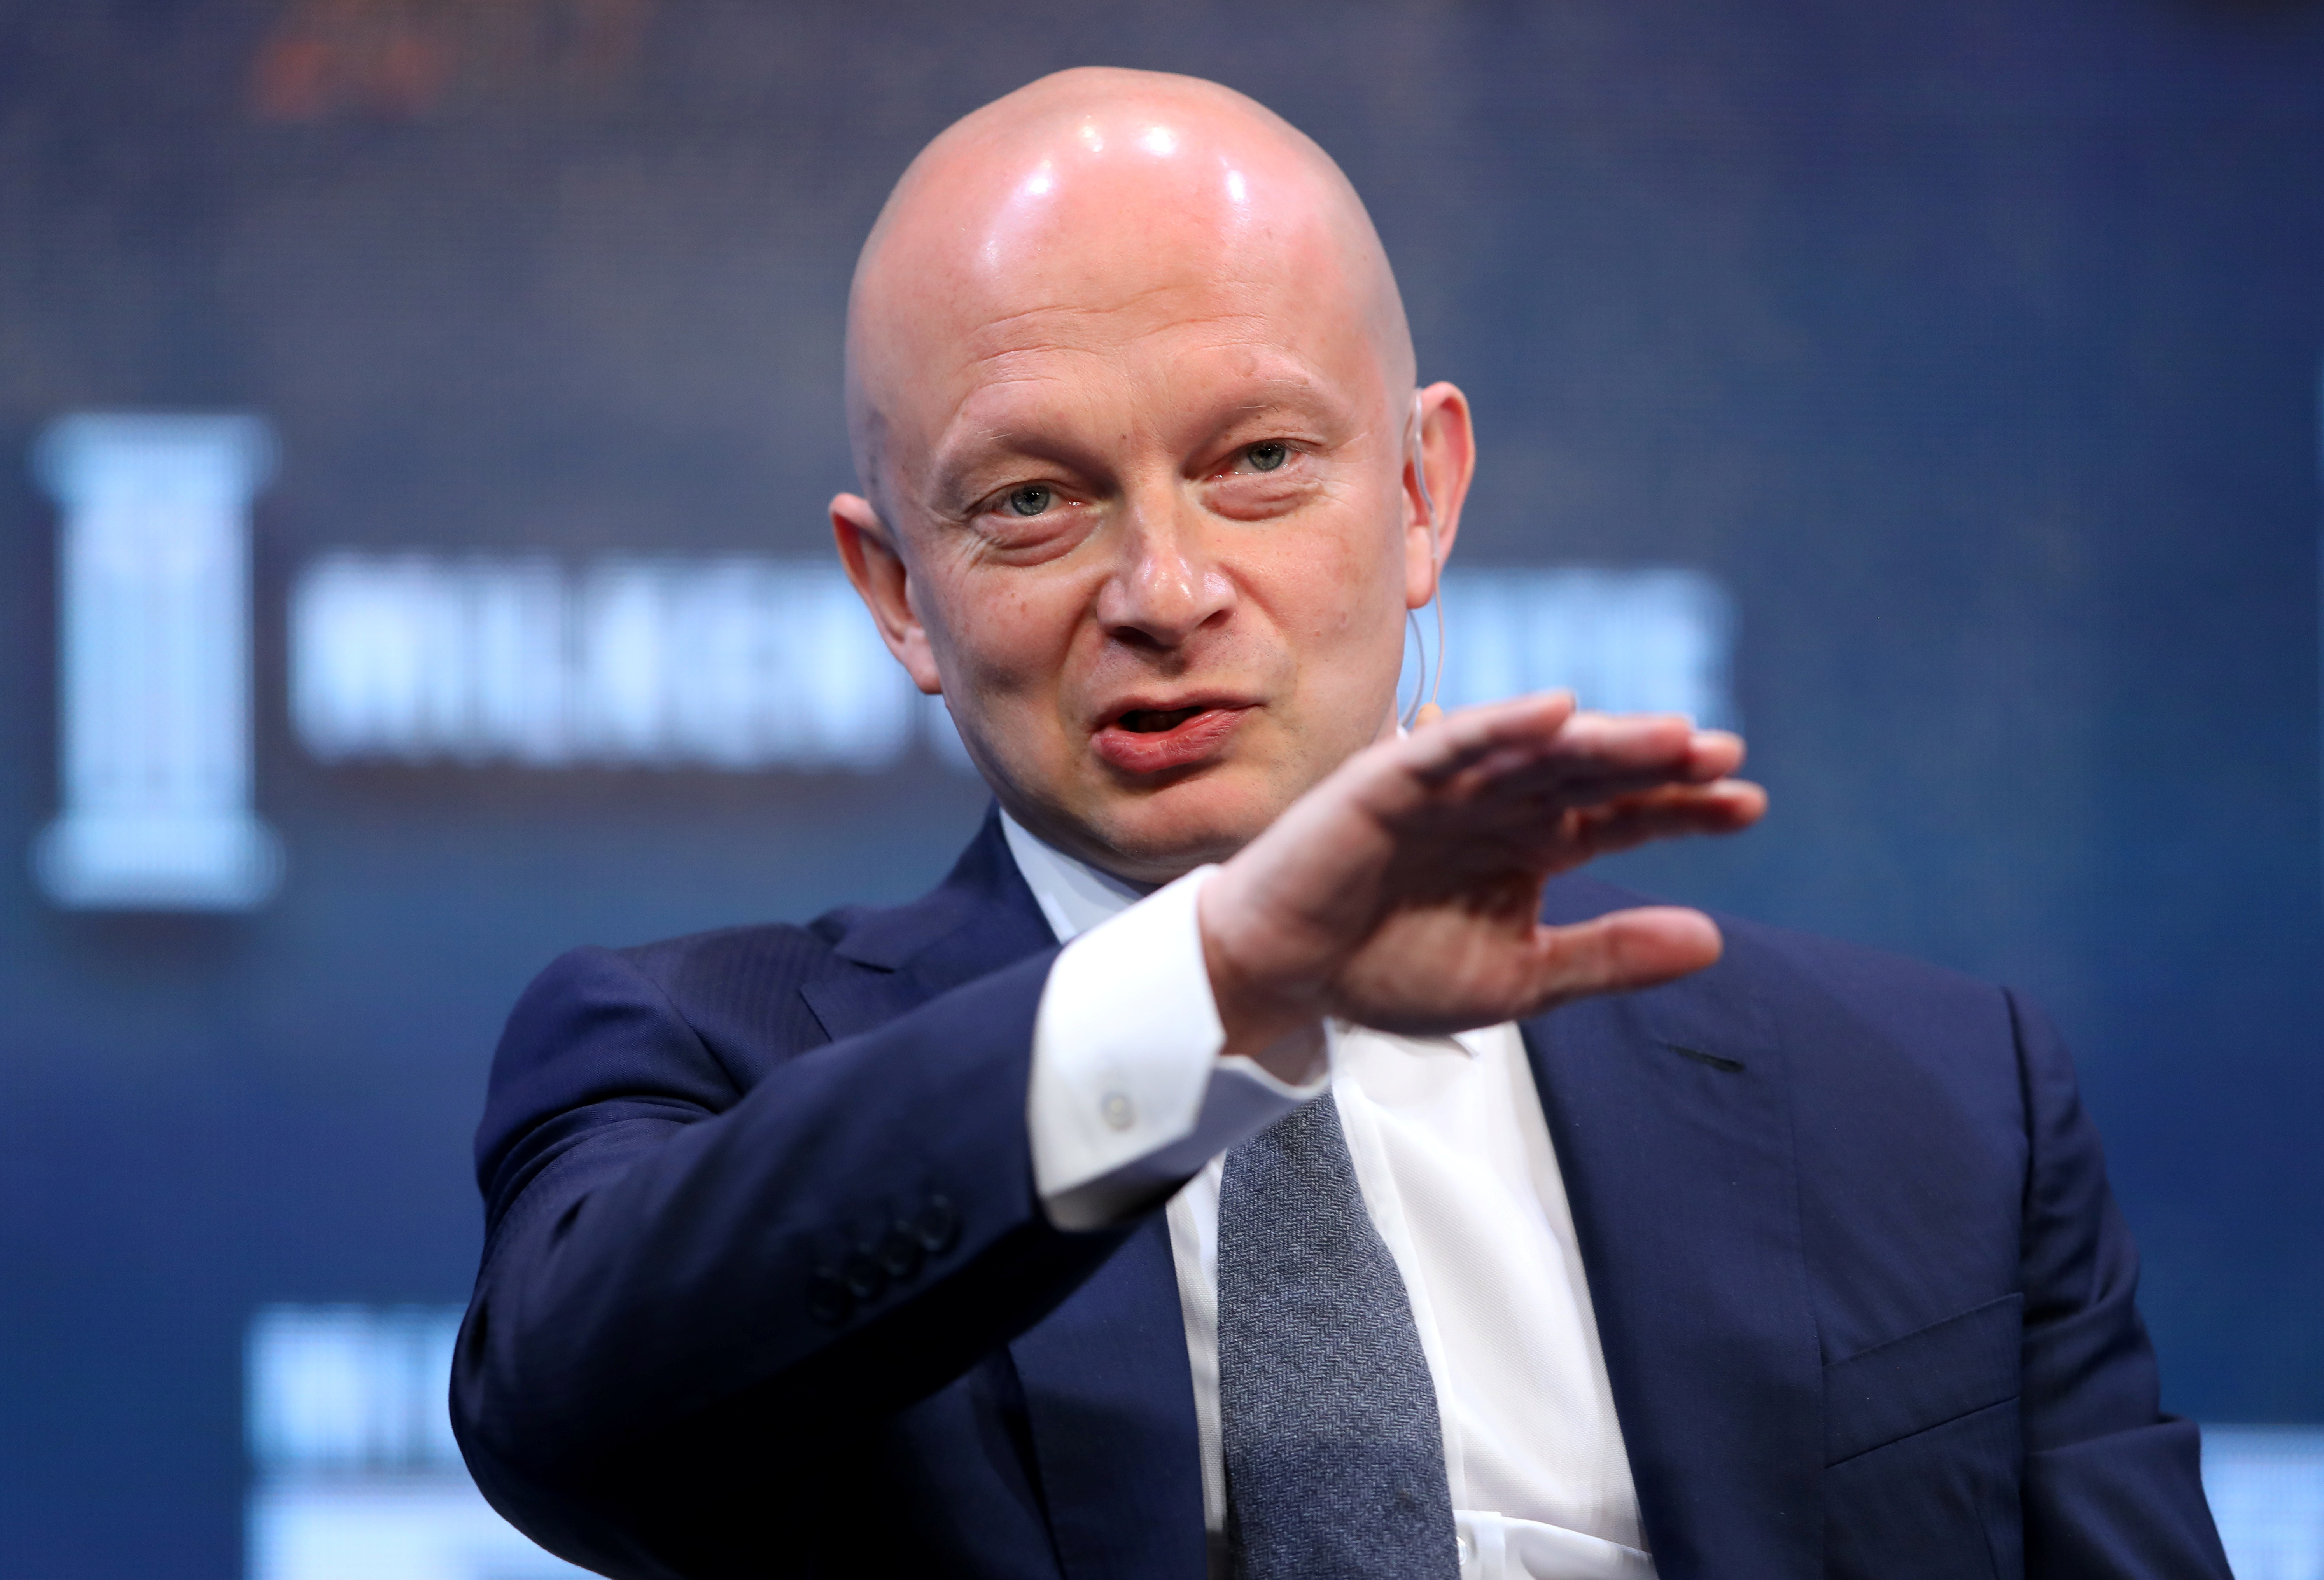 Igor Tulchinsky, founder, chairman and CEO of WorldQuant LLC, speaks during the Milken Institute Global Conference in Beverly Hills, California, U.S., May 1, 2017. REUTERS/Mike Blake - RC12A0281E70